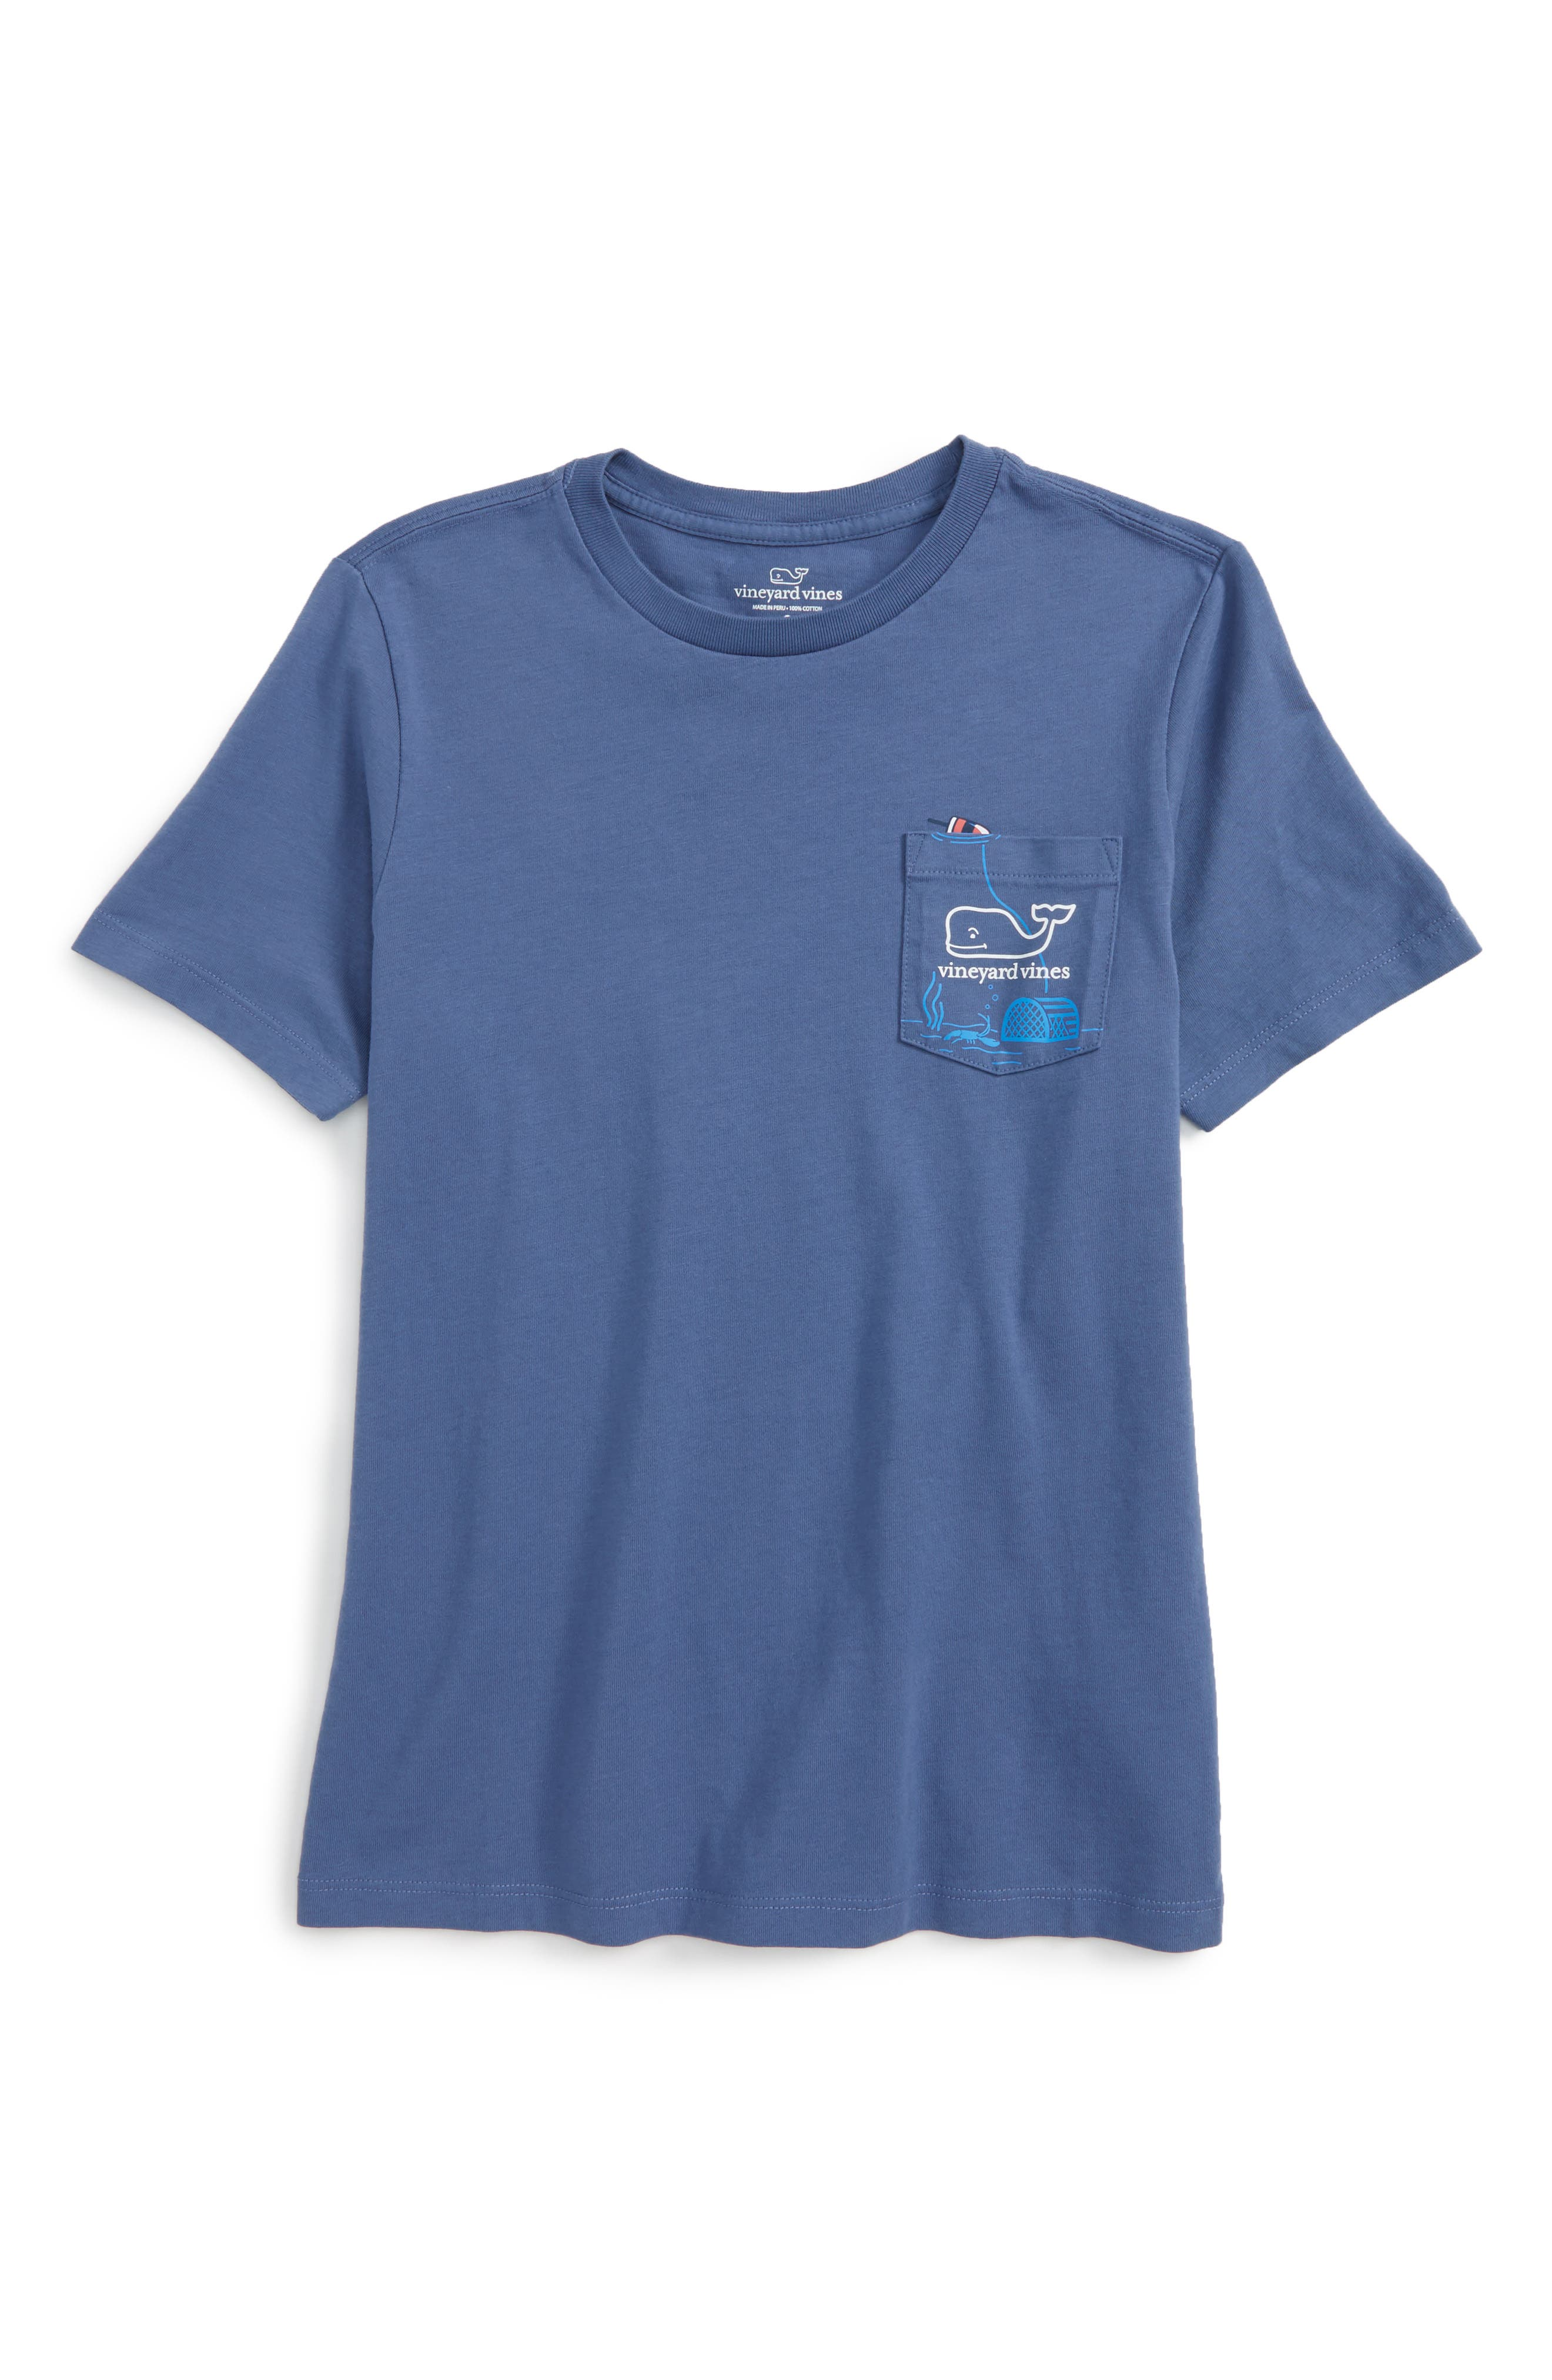 Main Image - vineyard vines Lobster Trap Cotton T-Shirt (Big Boys)